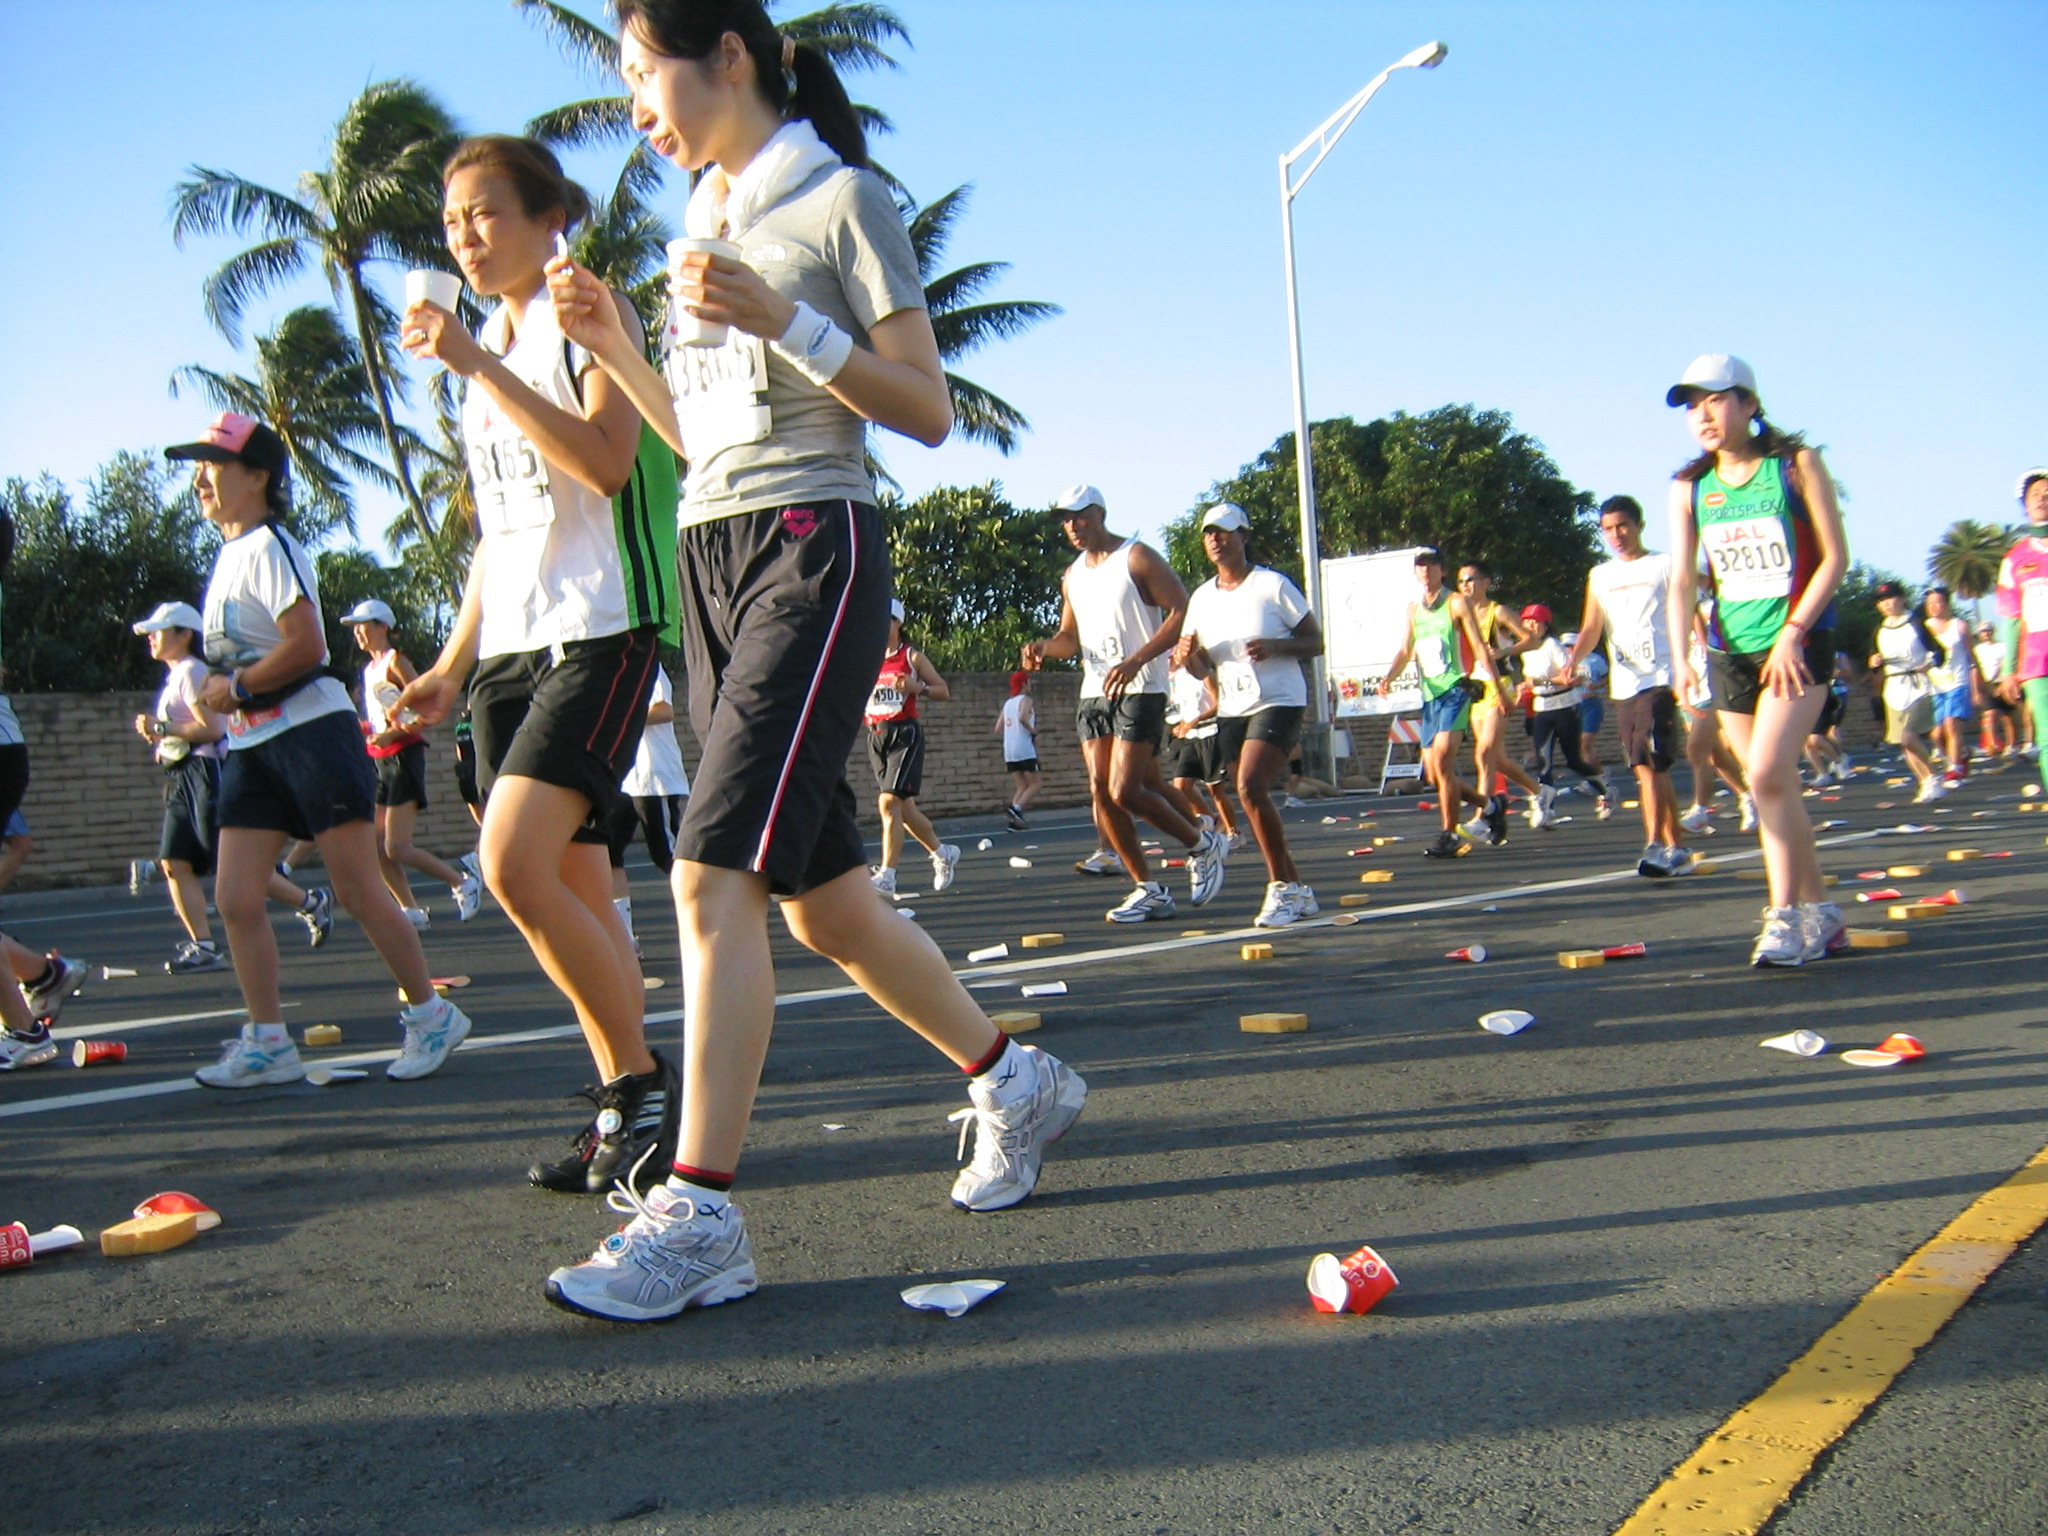 Honolulu Marathon Shmonolulu Shmarathon - If You Can Walk, You Can Roll